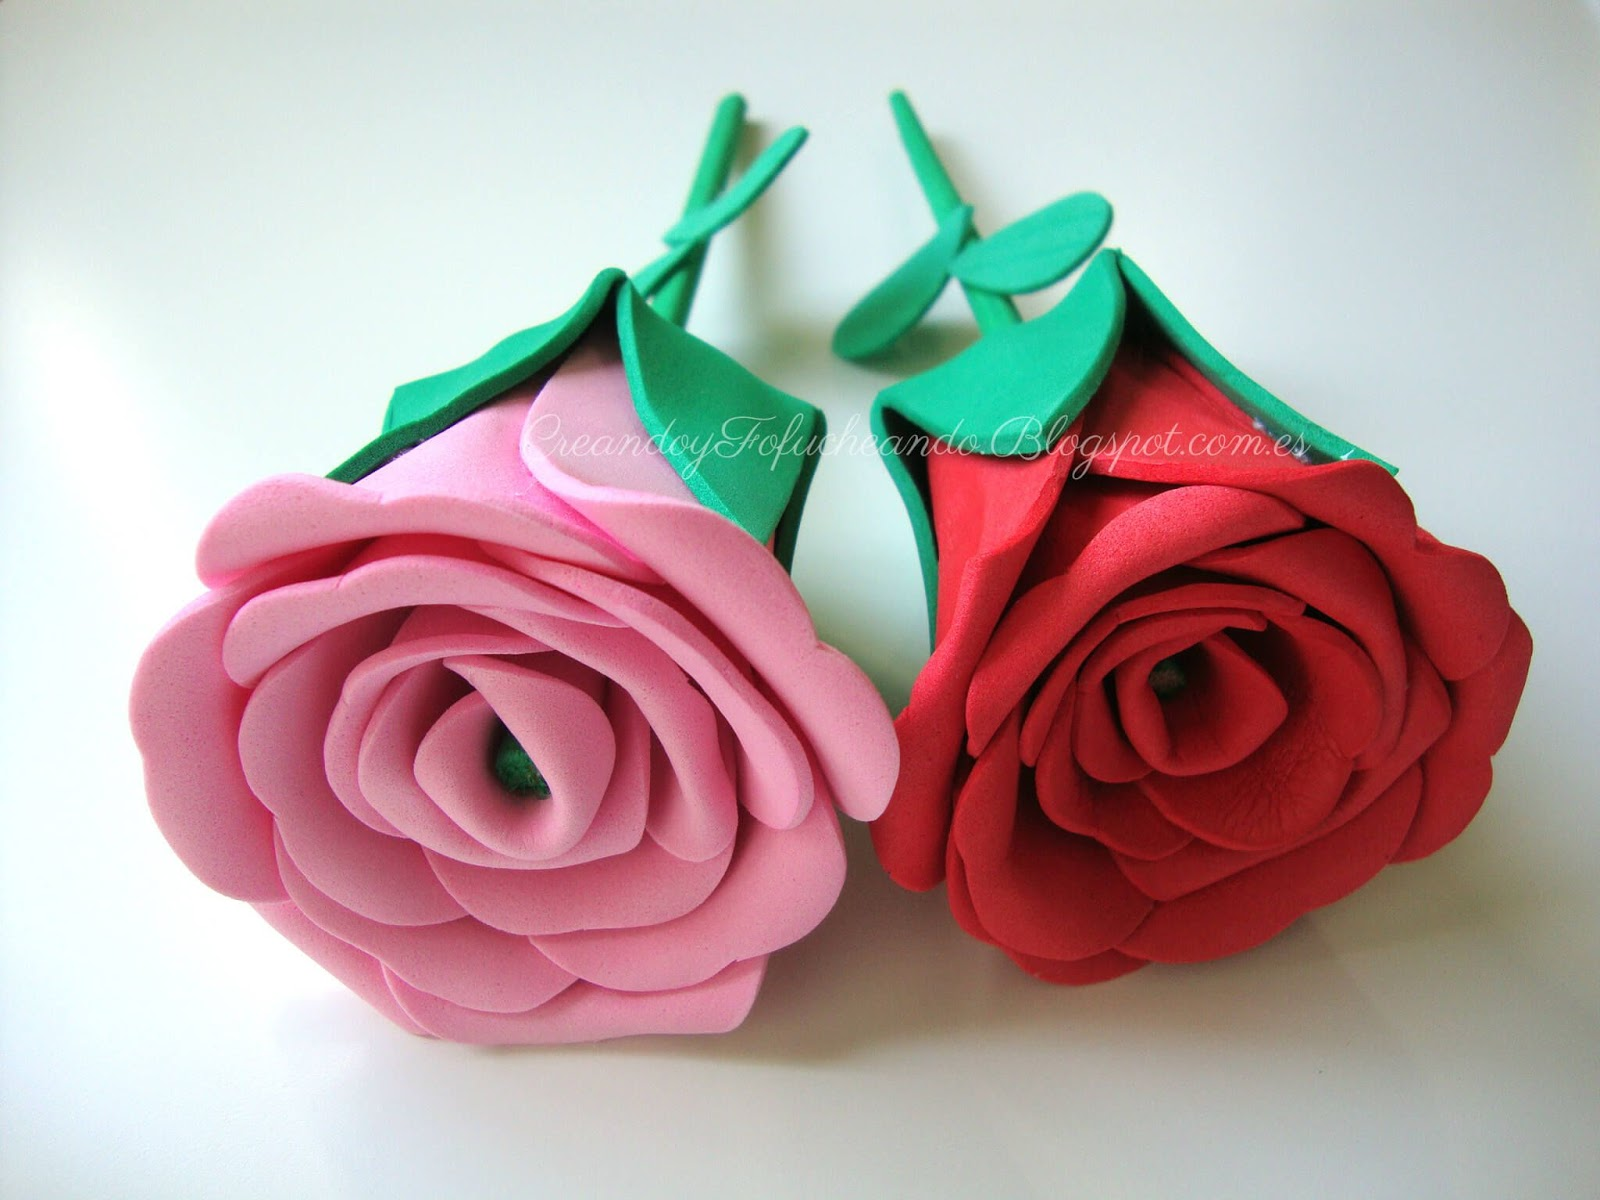 Cmo hacer Rosas de Goma eva Handbox Craft Lovers Comunidad DIY